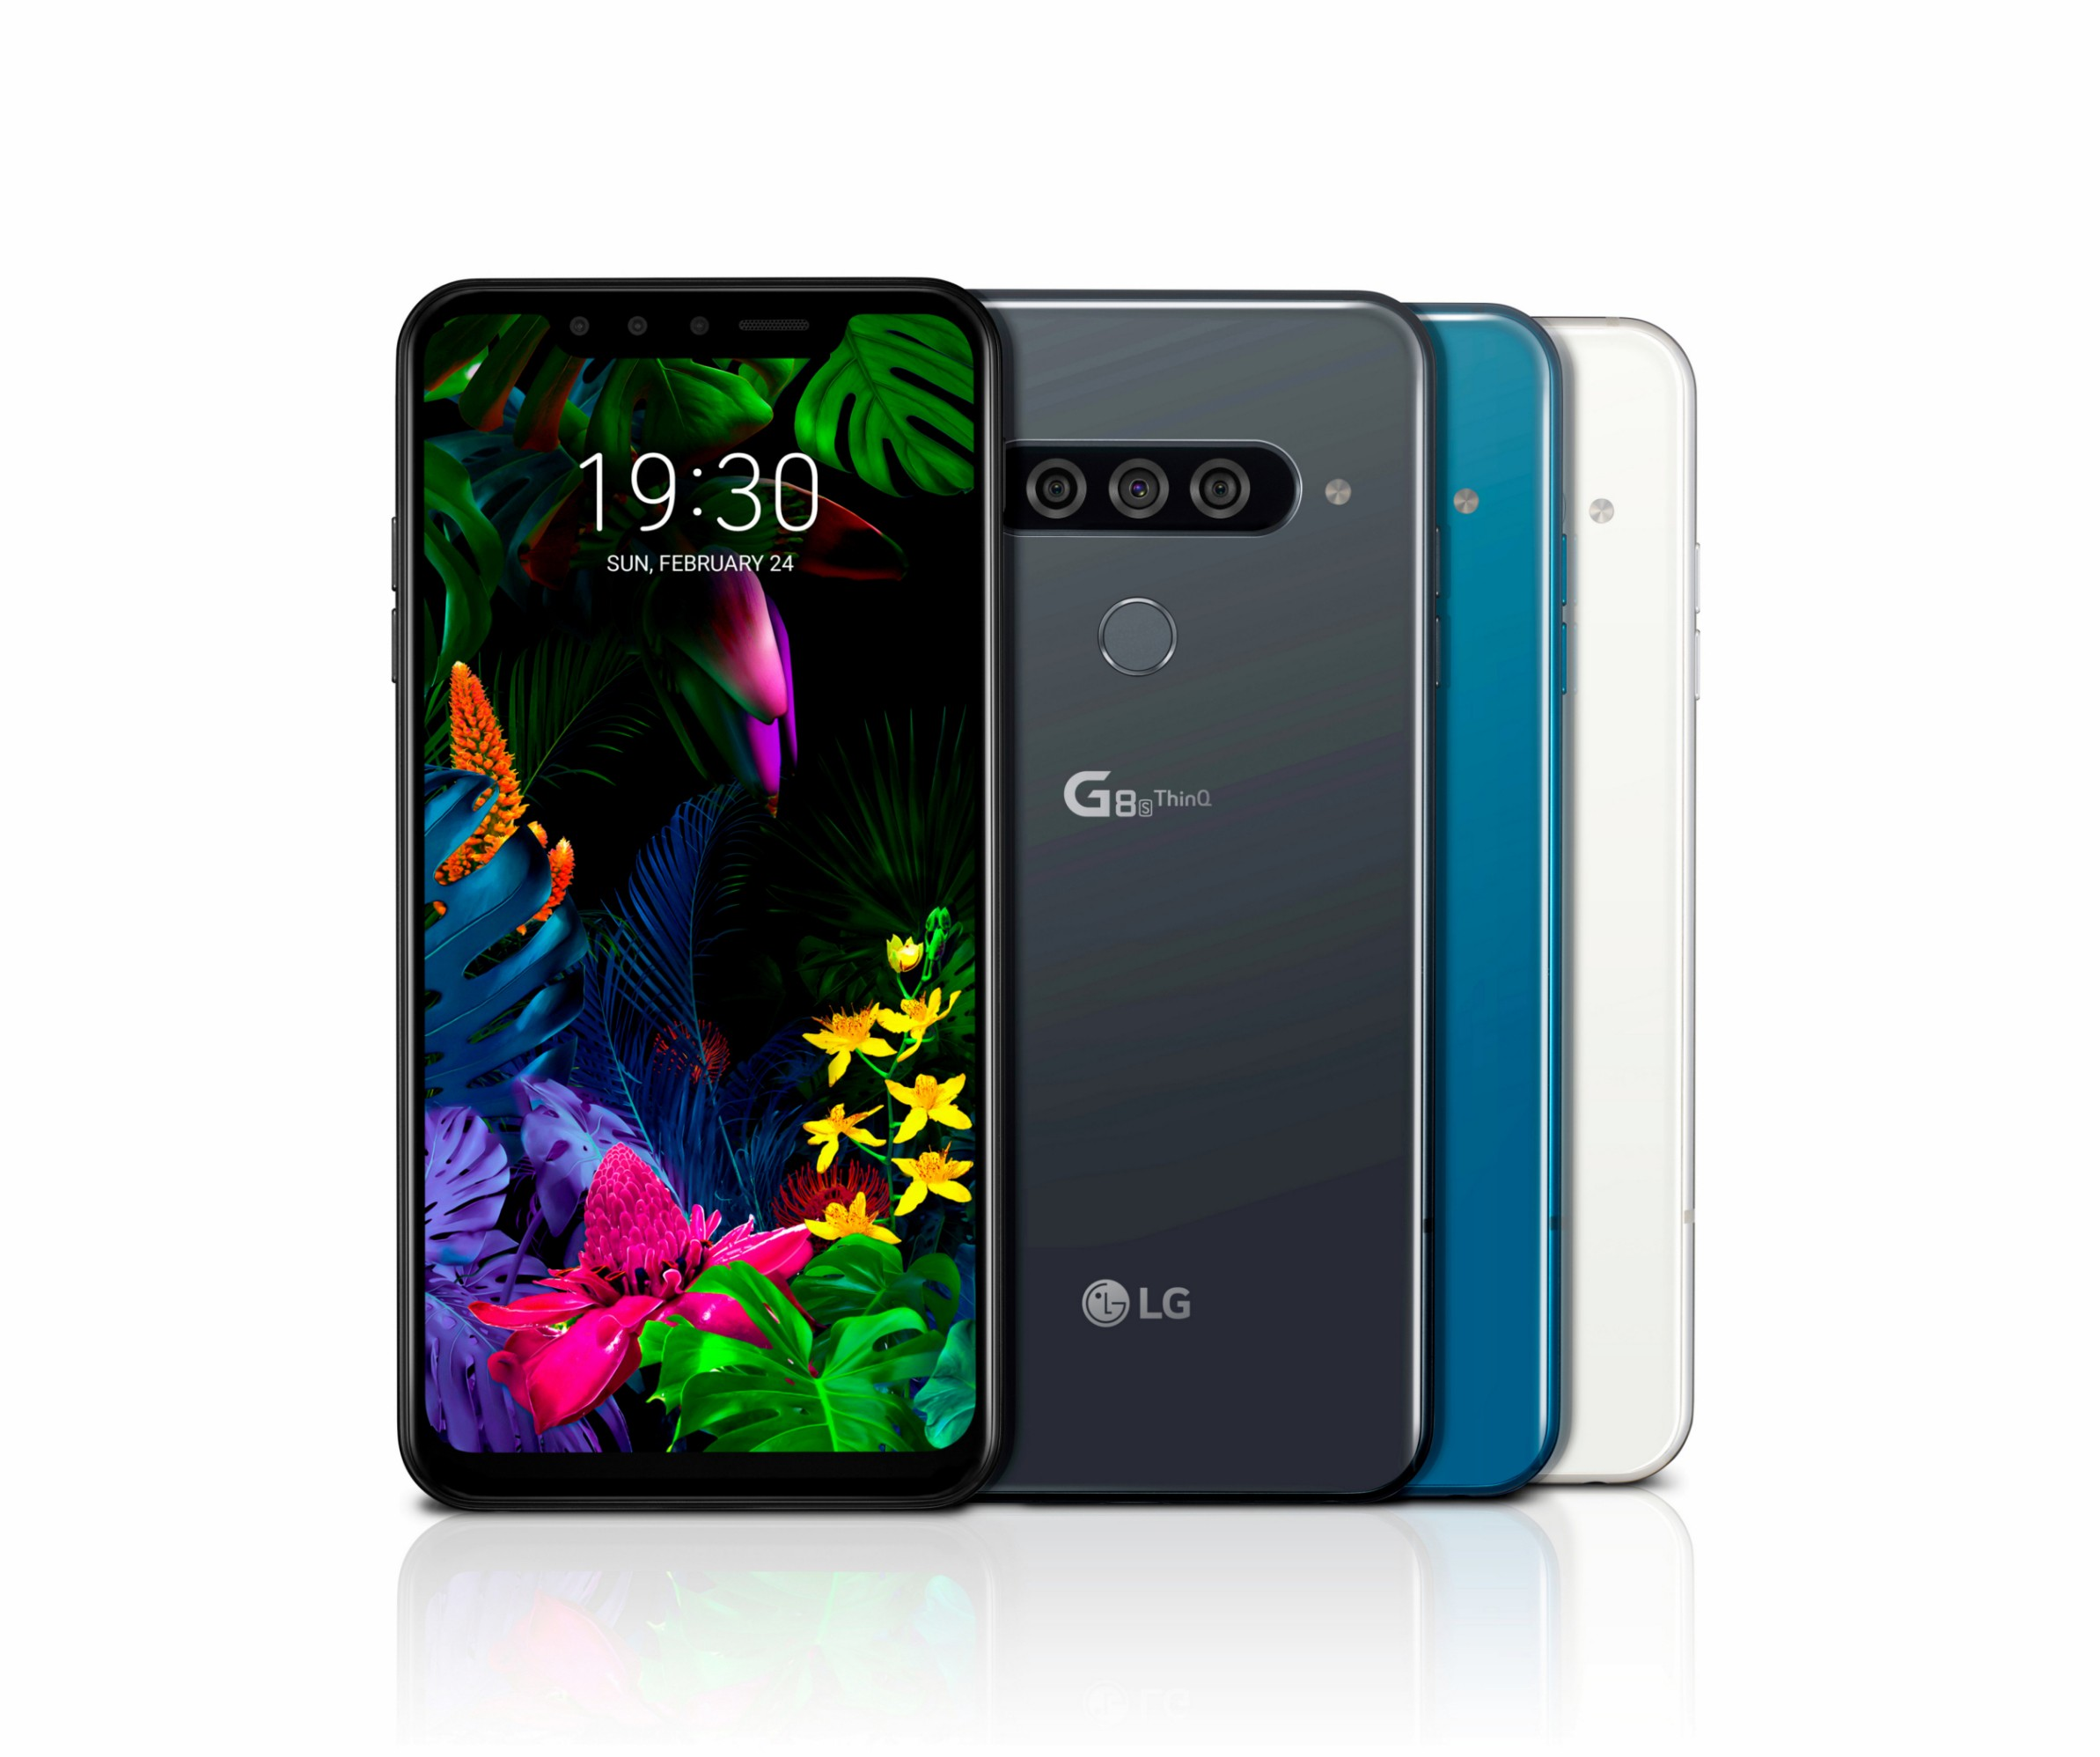 LG-G8-ThinQ-Range-01-Pinoy-Tech-Blog-4LG-G8-ThinQ-Range-01-Pinoy-Tech-Blog-4